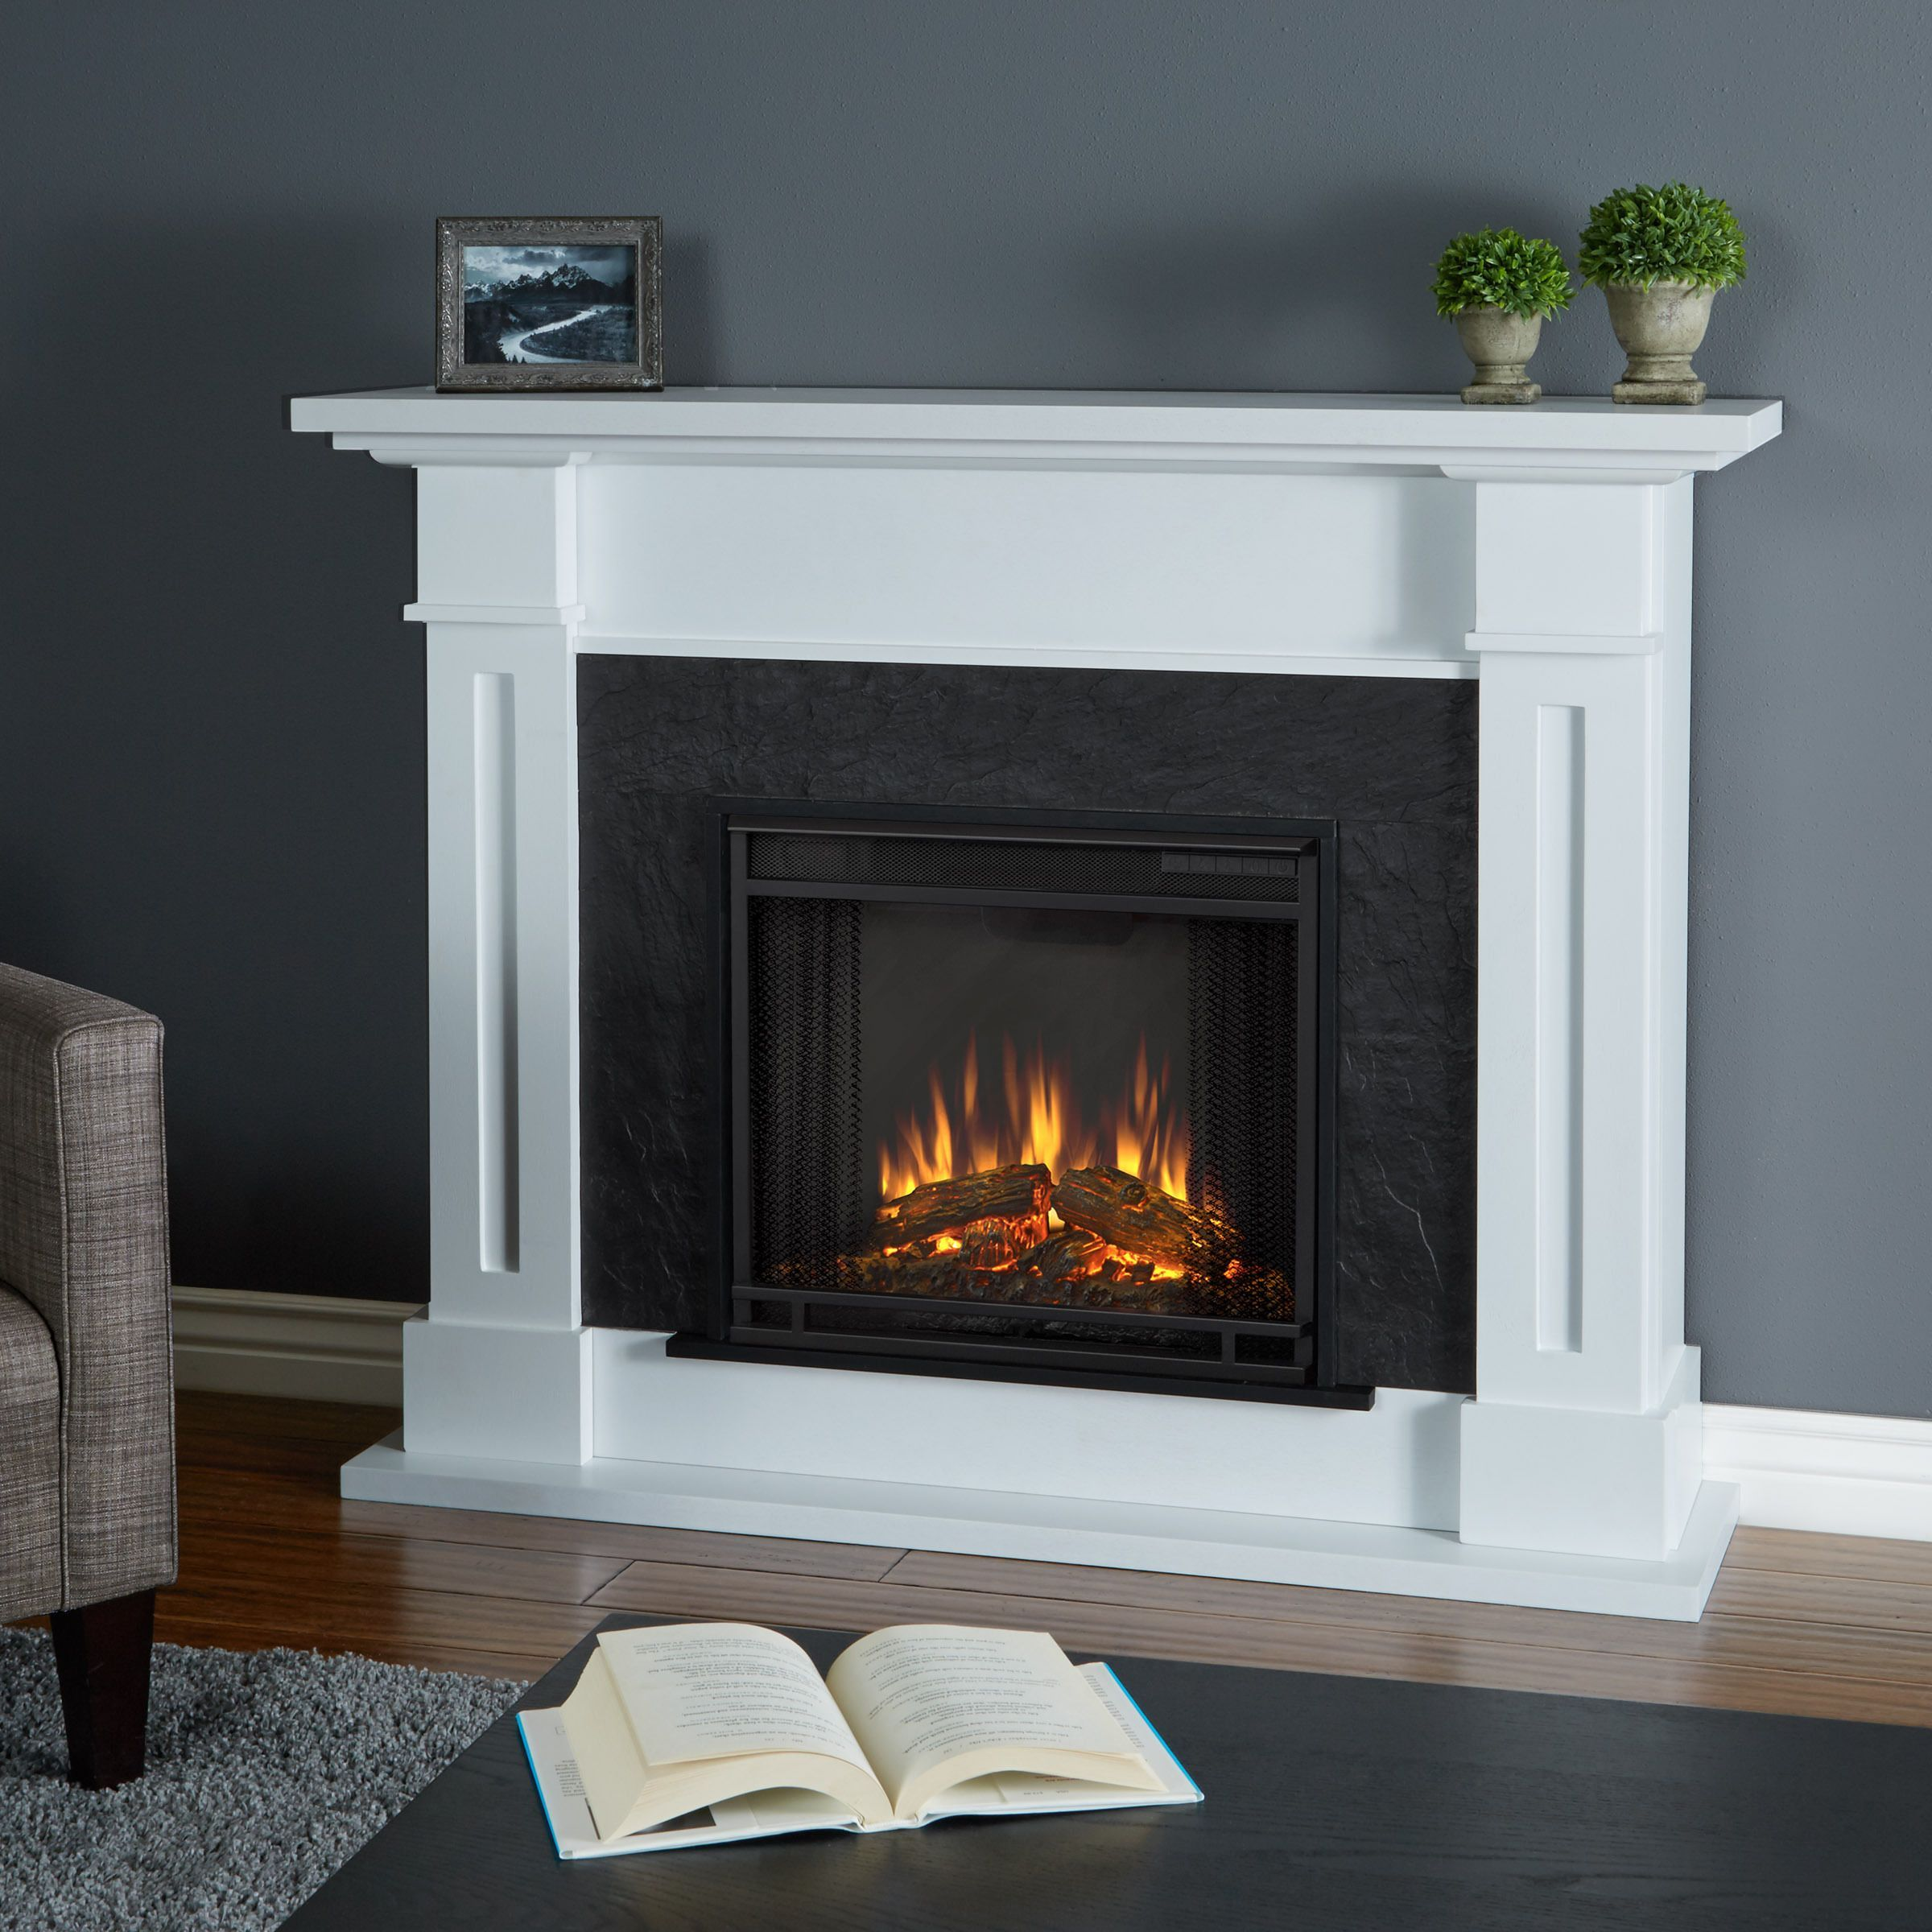 Exquisitely Light And Warm Your Home With This Real Flame Fireplace. The  Vivid Flame Electric